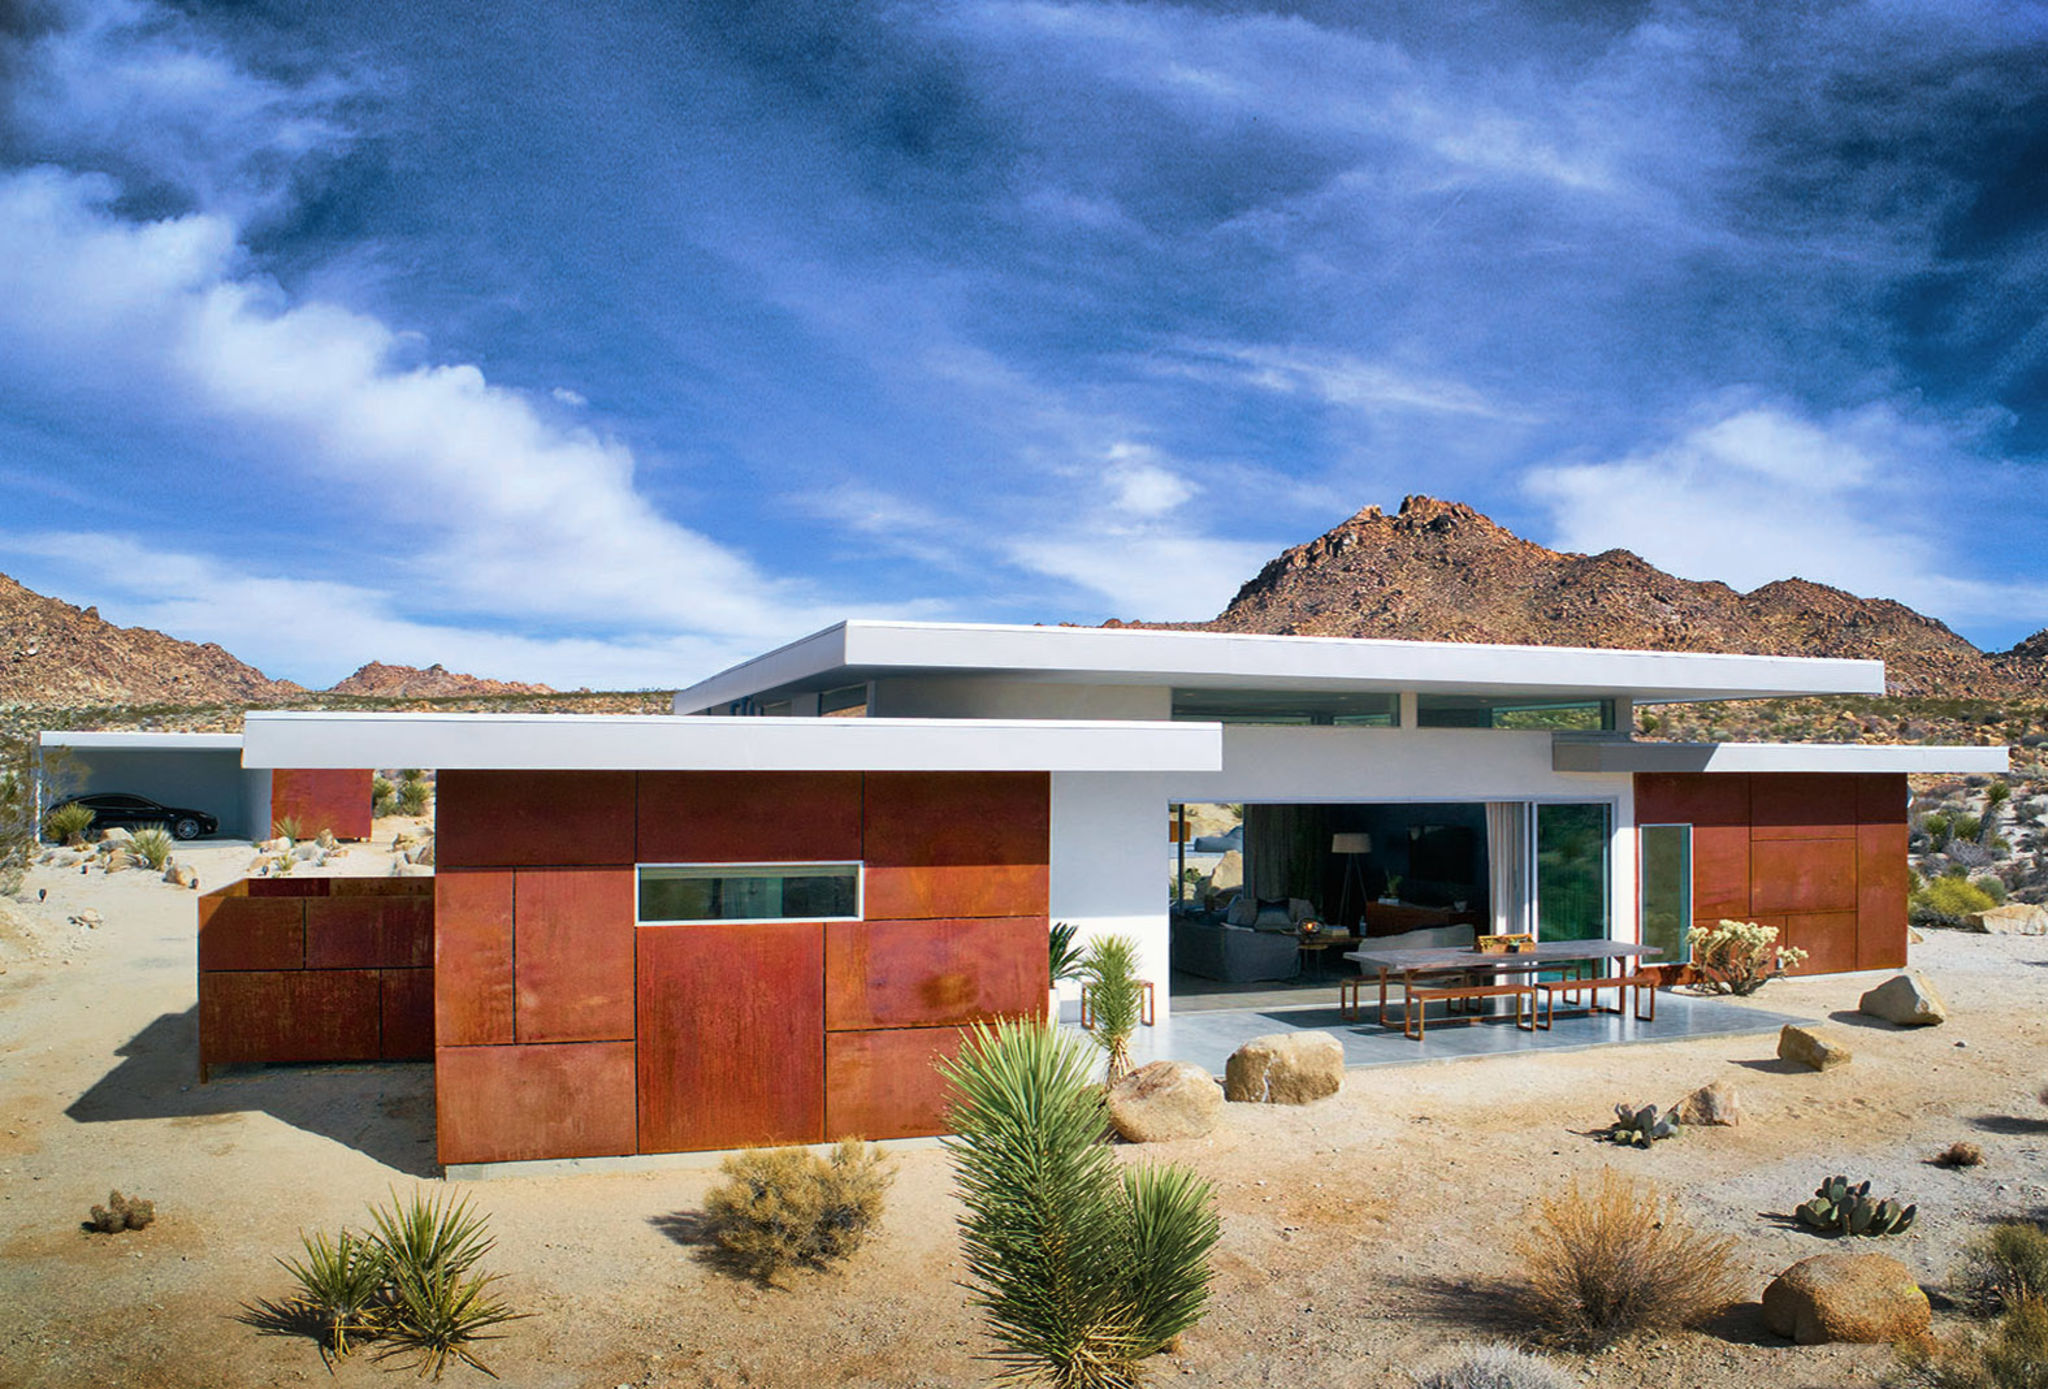 SkyHouse Joshua Tree: Private Villa with Pool/Spa